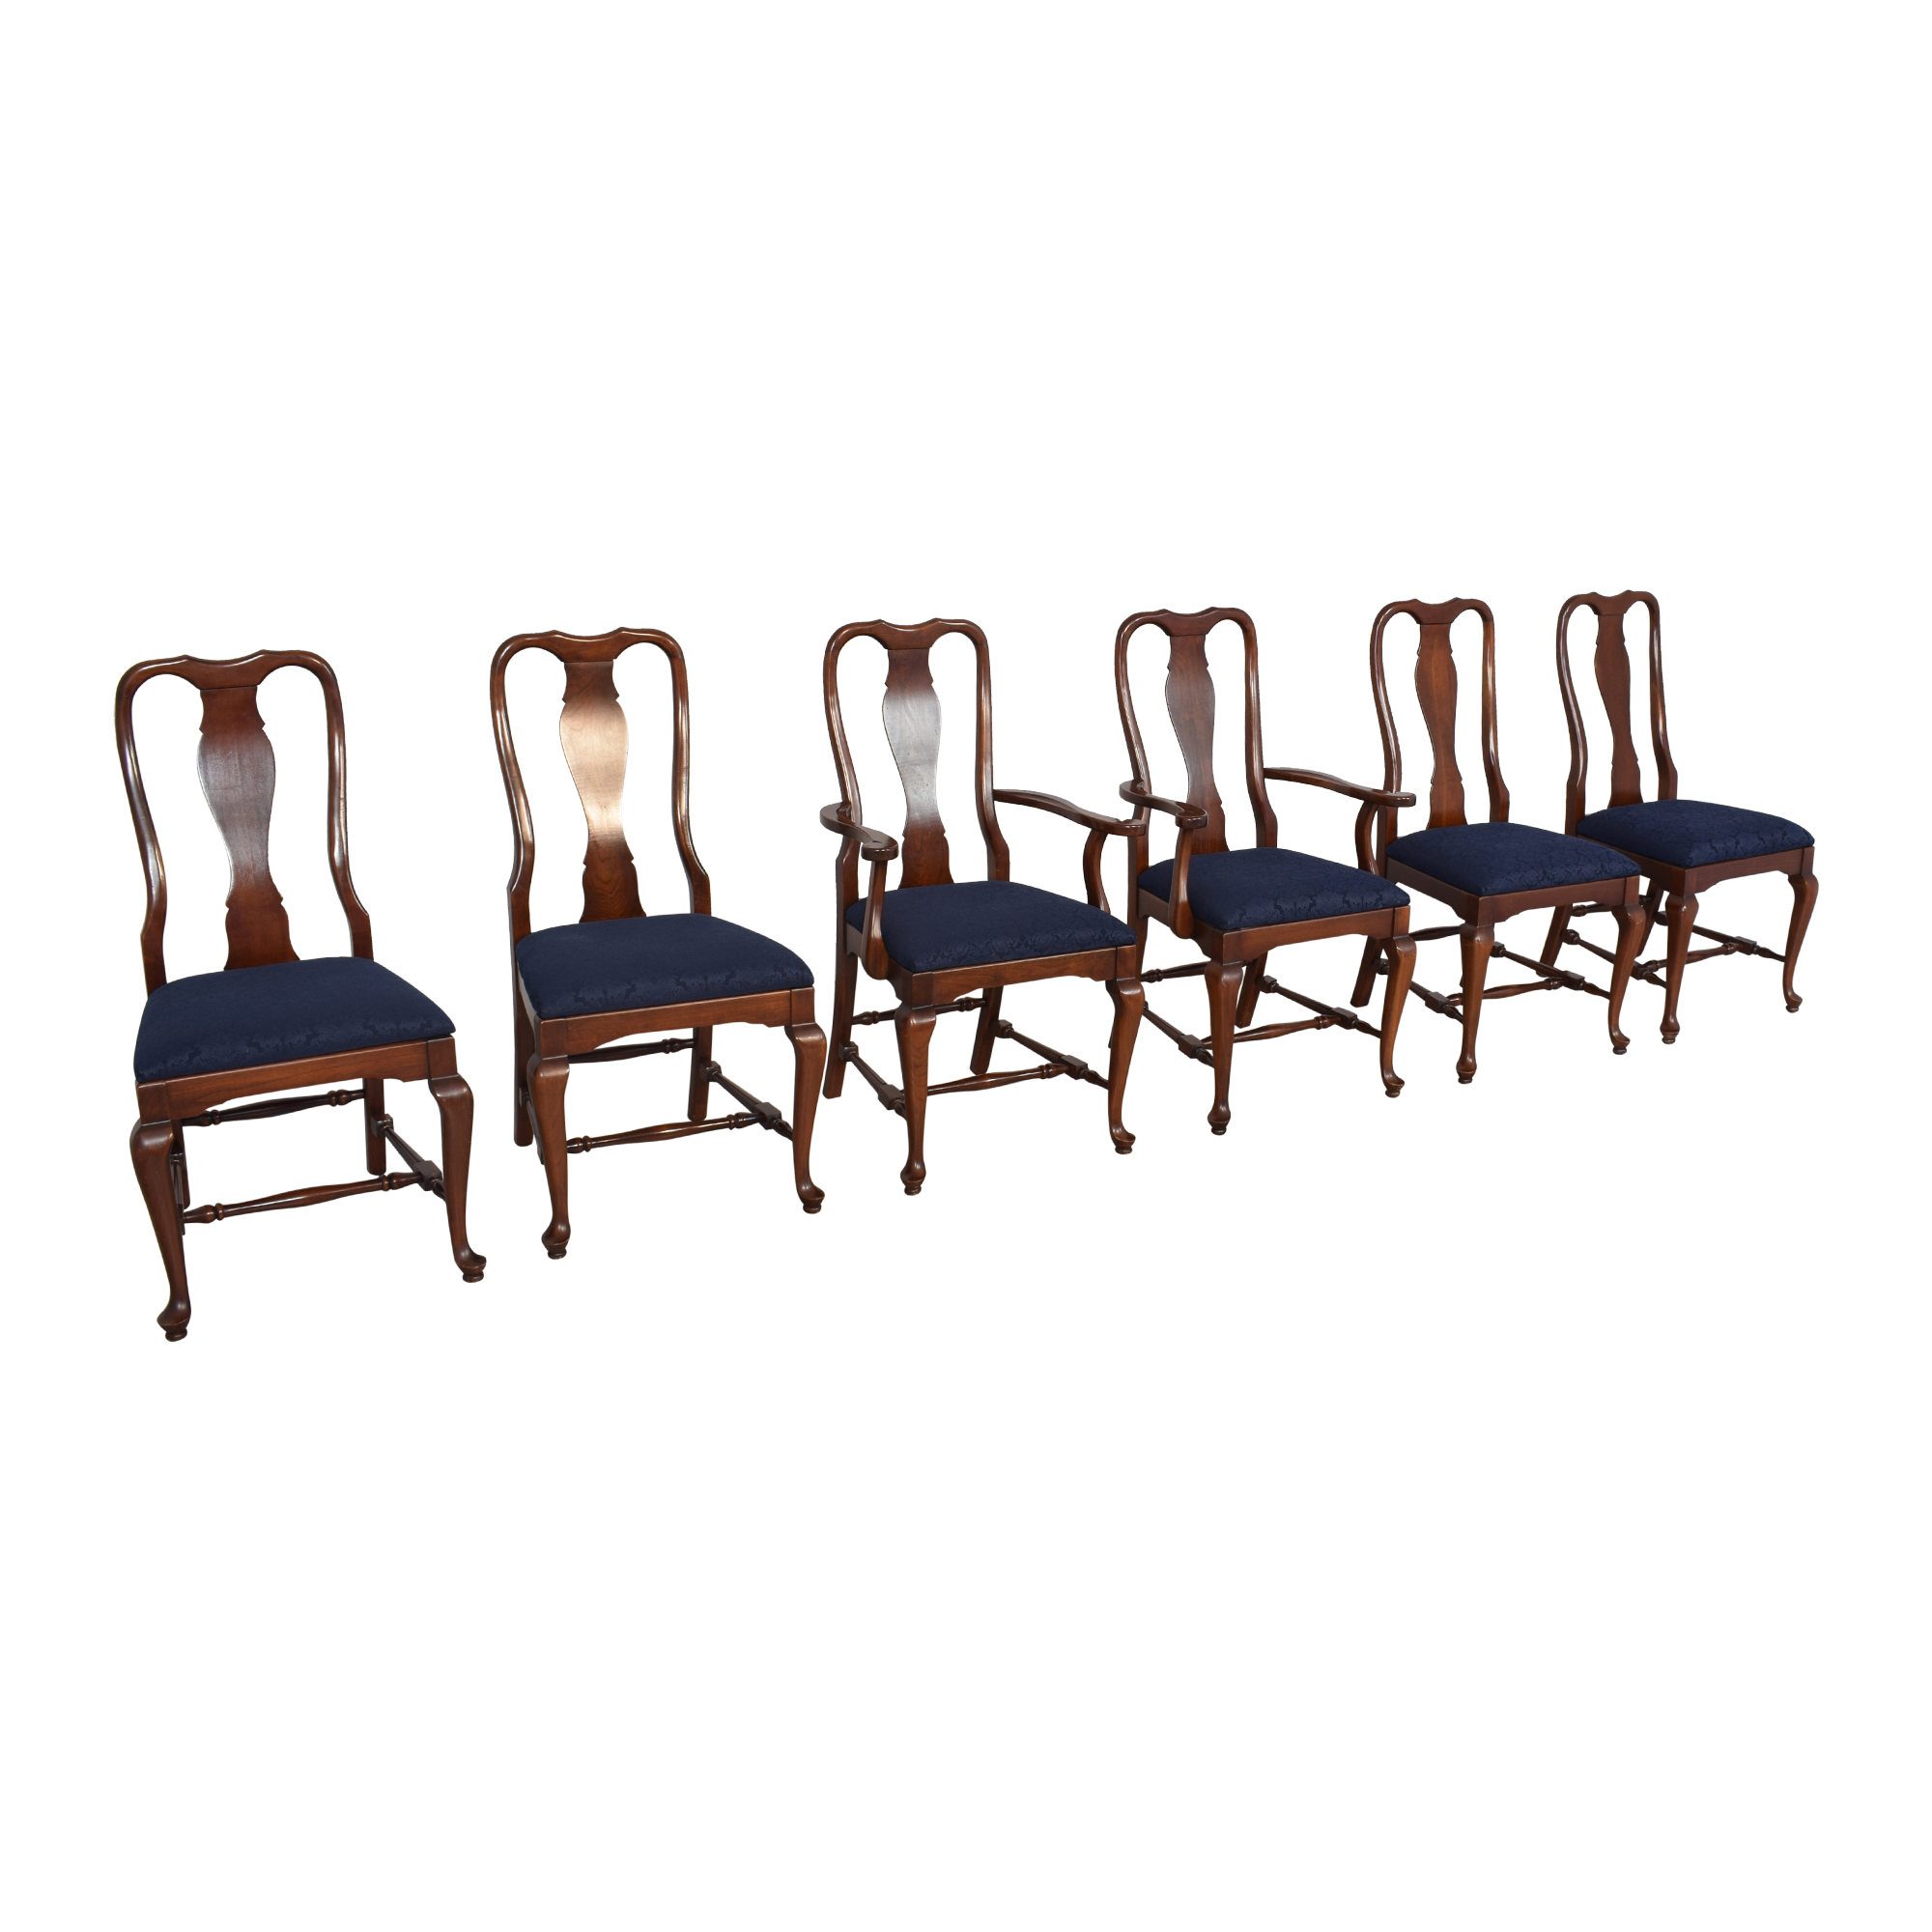 Hitchcock Queen Anne Dining Chairs / Dining Chairs